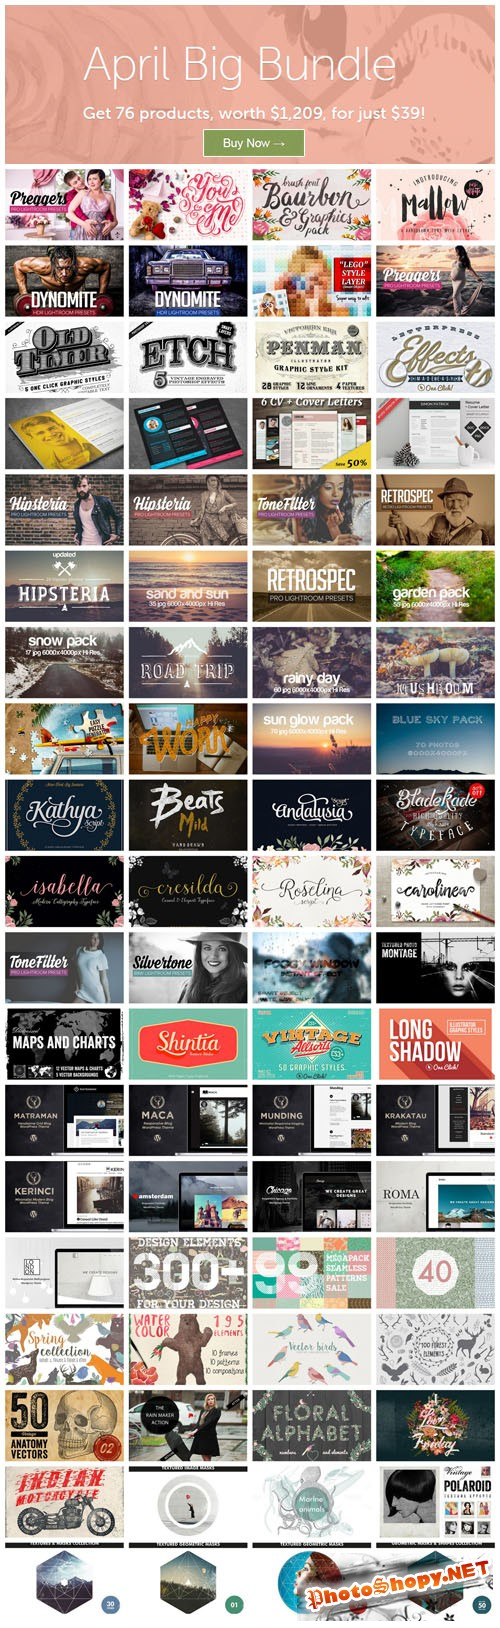 April Big Bundle 2015 - 76 Premium Creativemarket Items